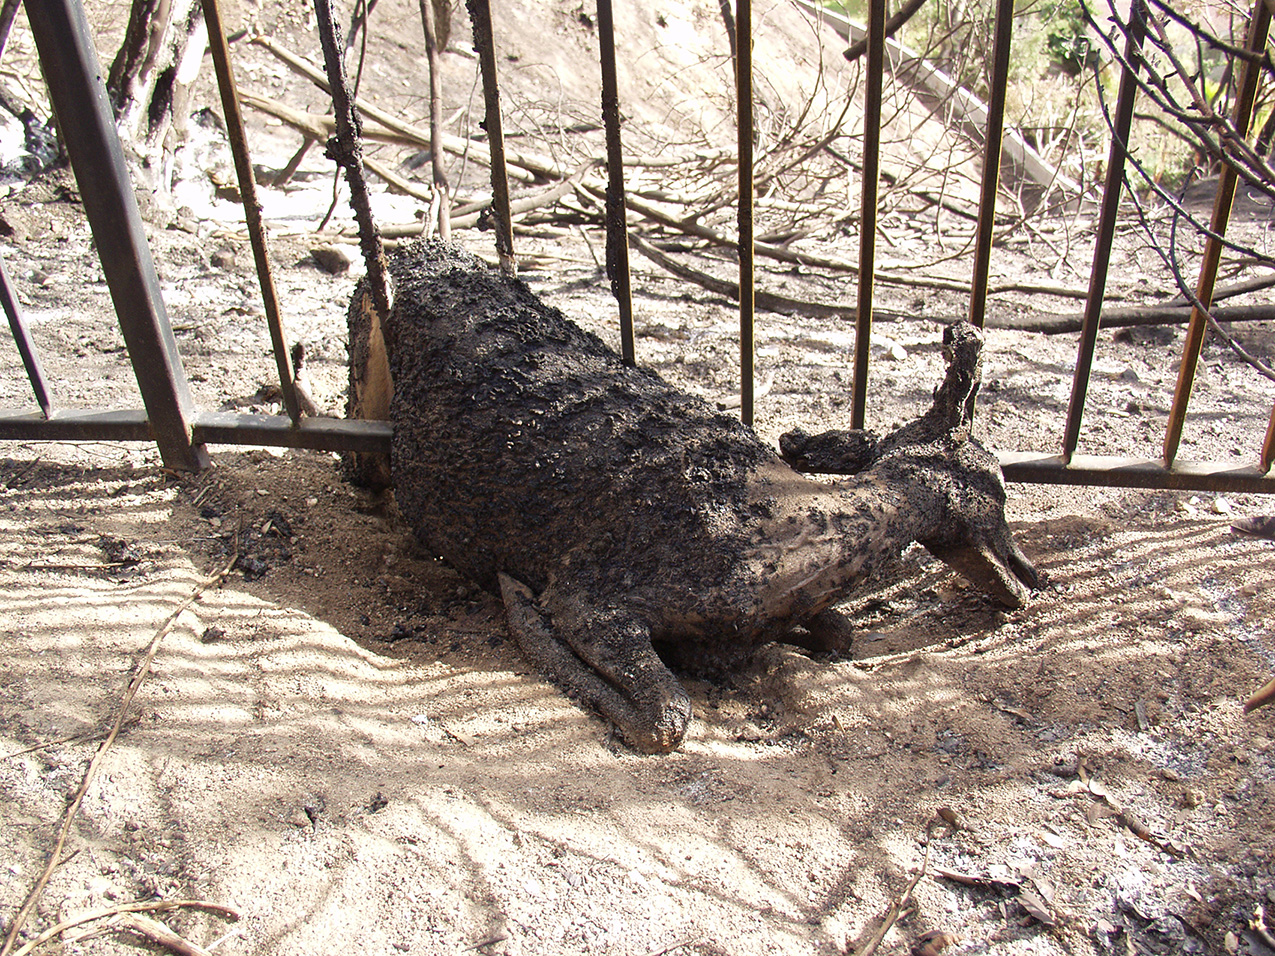 photo of a burned deer trapped in a fence after a wildfire